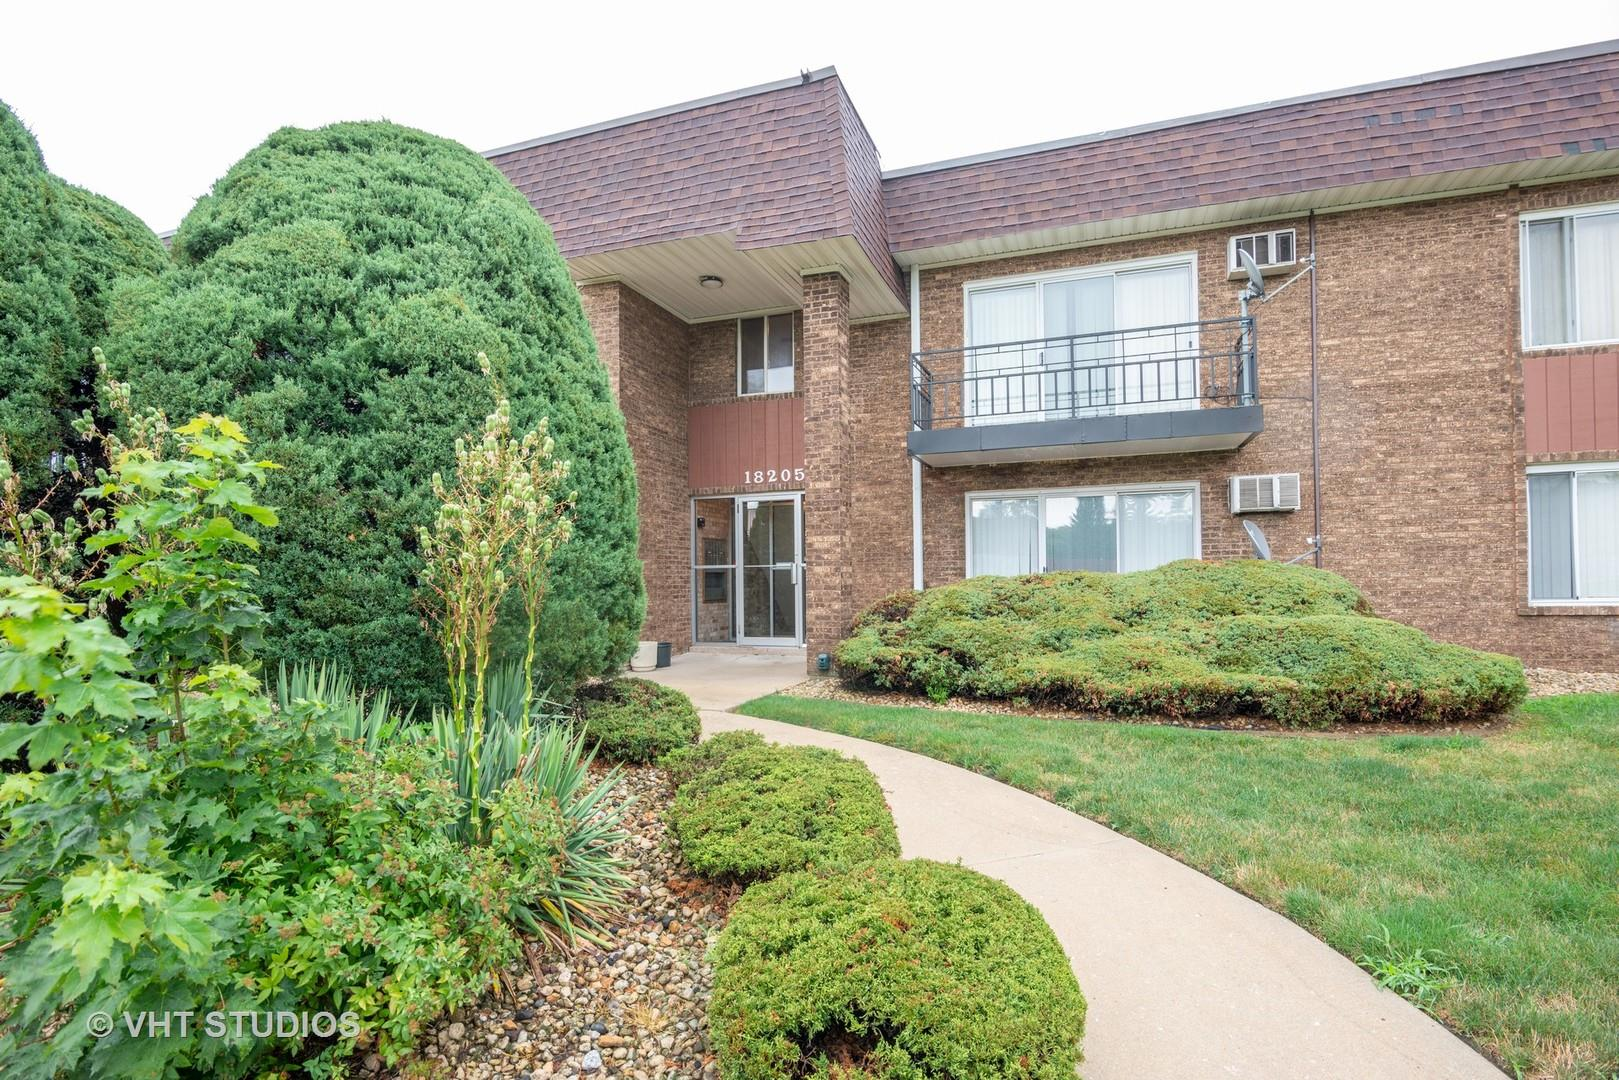 18205 Morgan Street #6B, Homewood, IL 60430 - #: 10790056